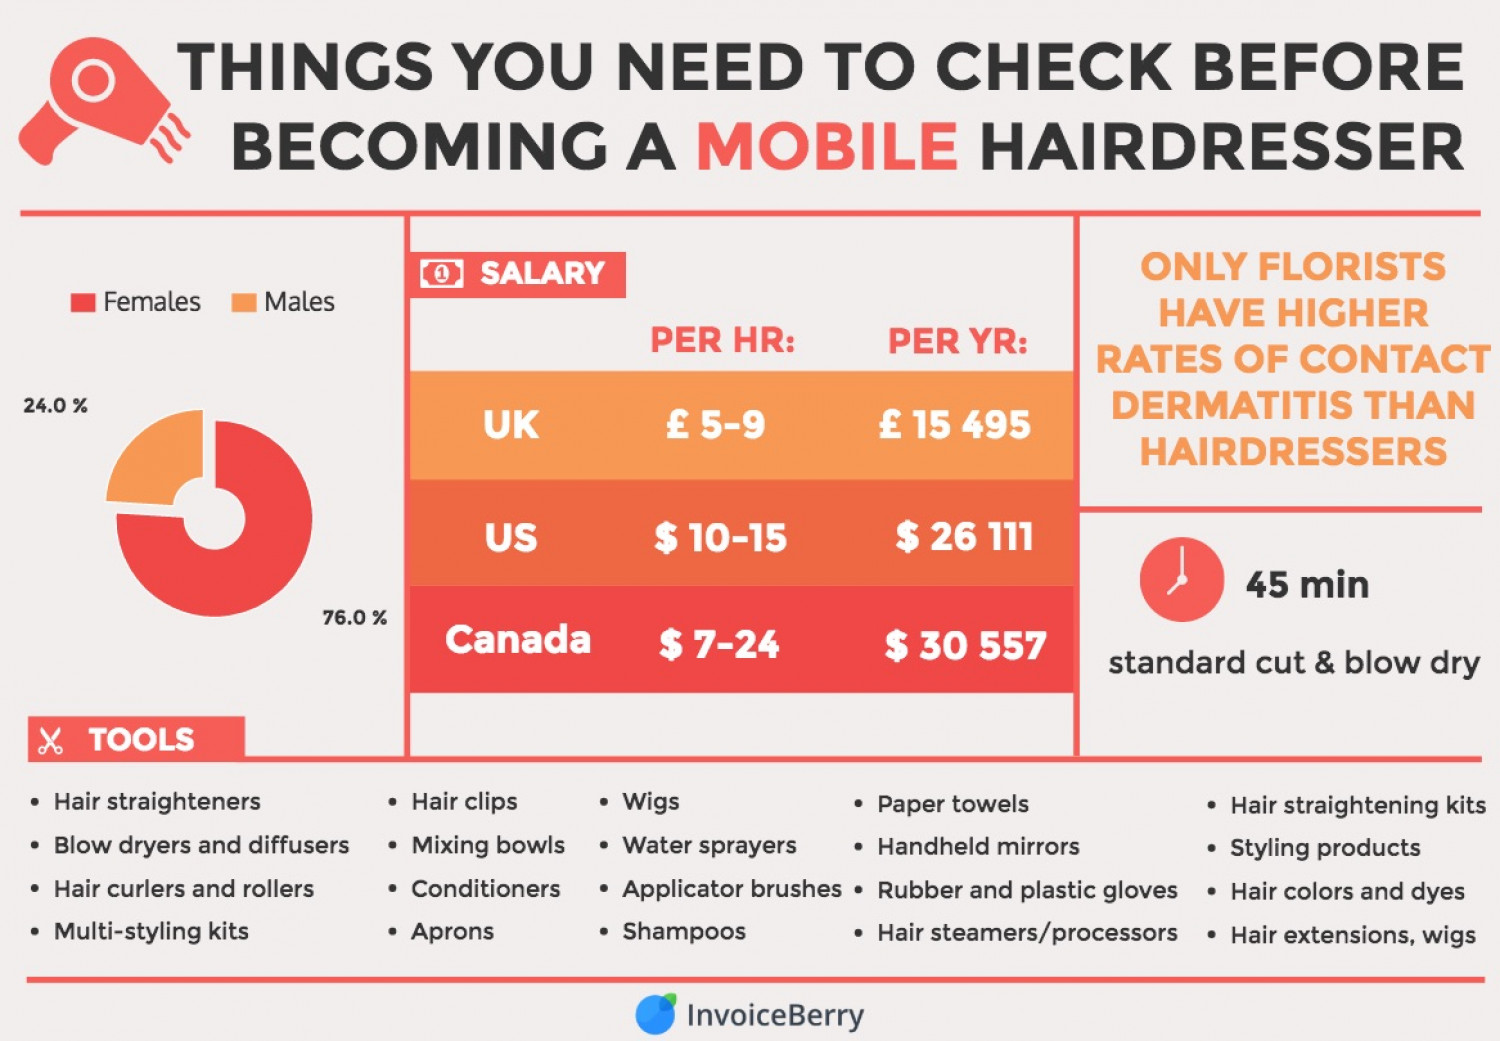 Becoming a Mobile Hairdresser Infographic